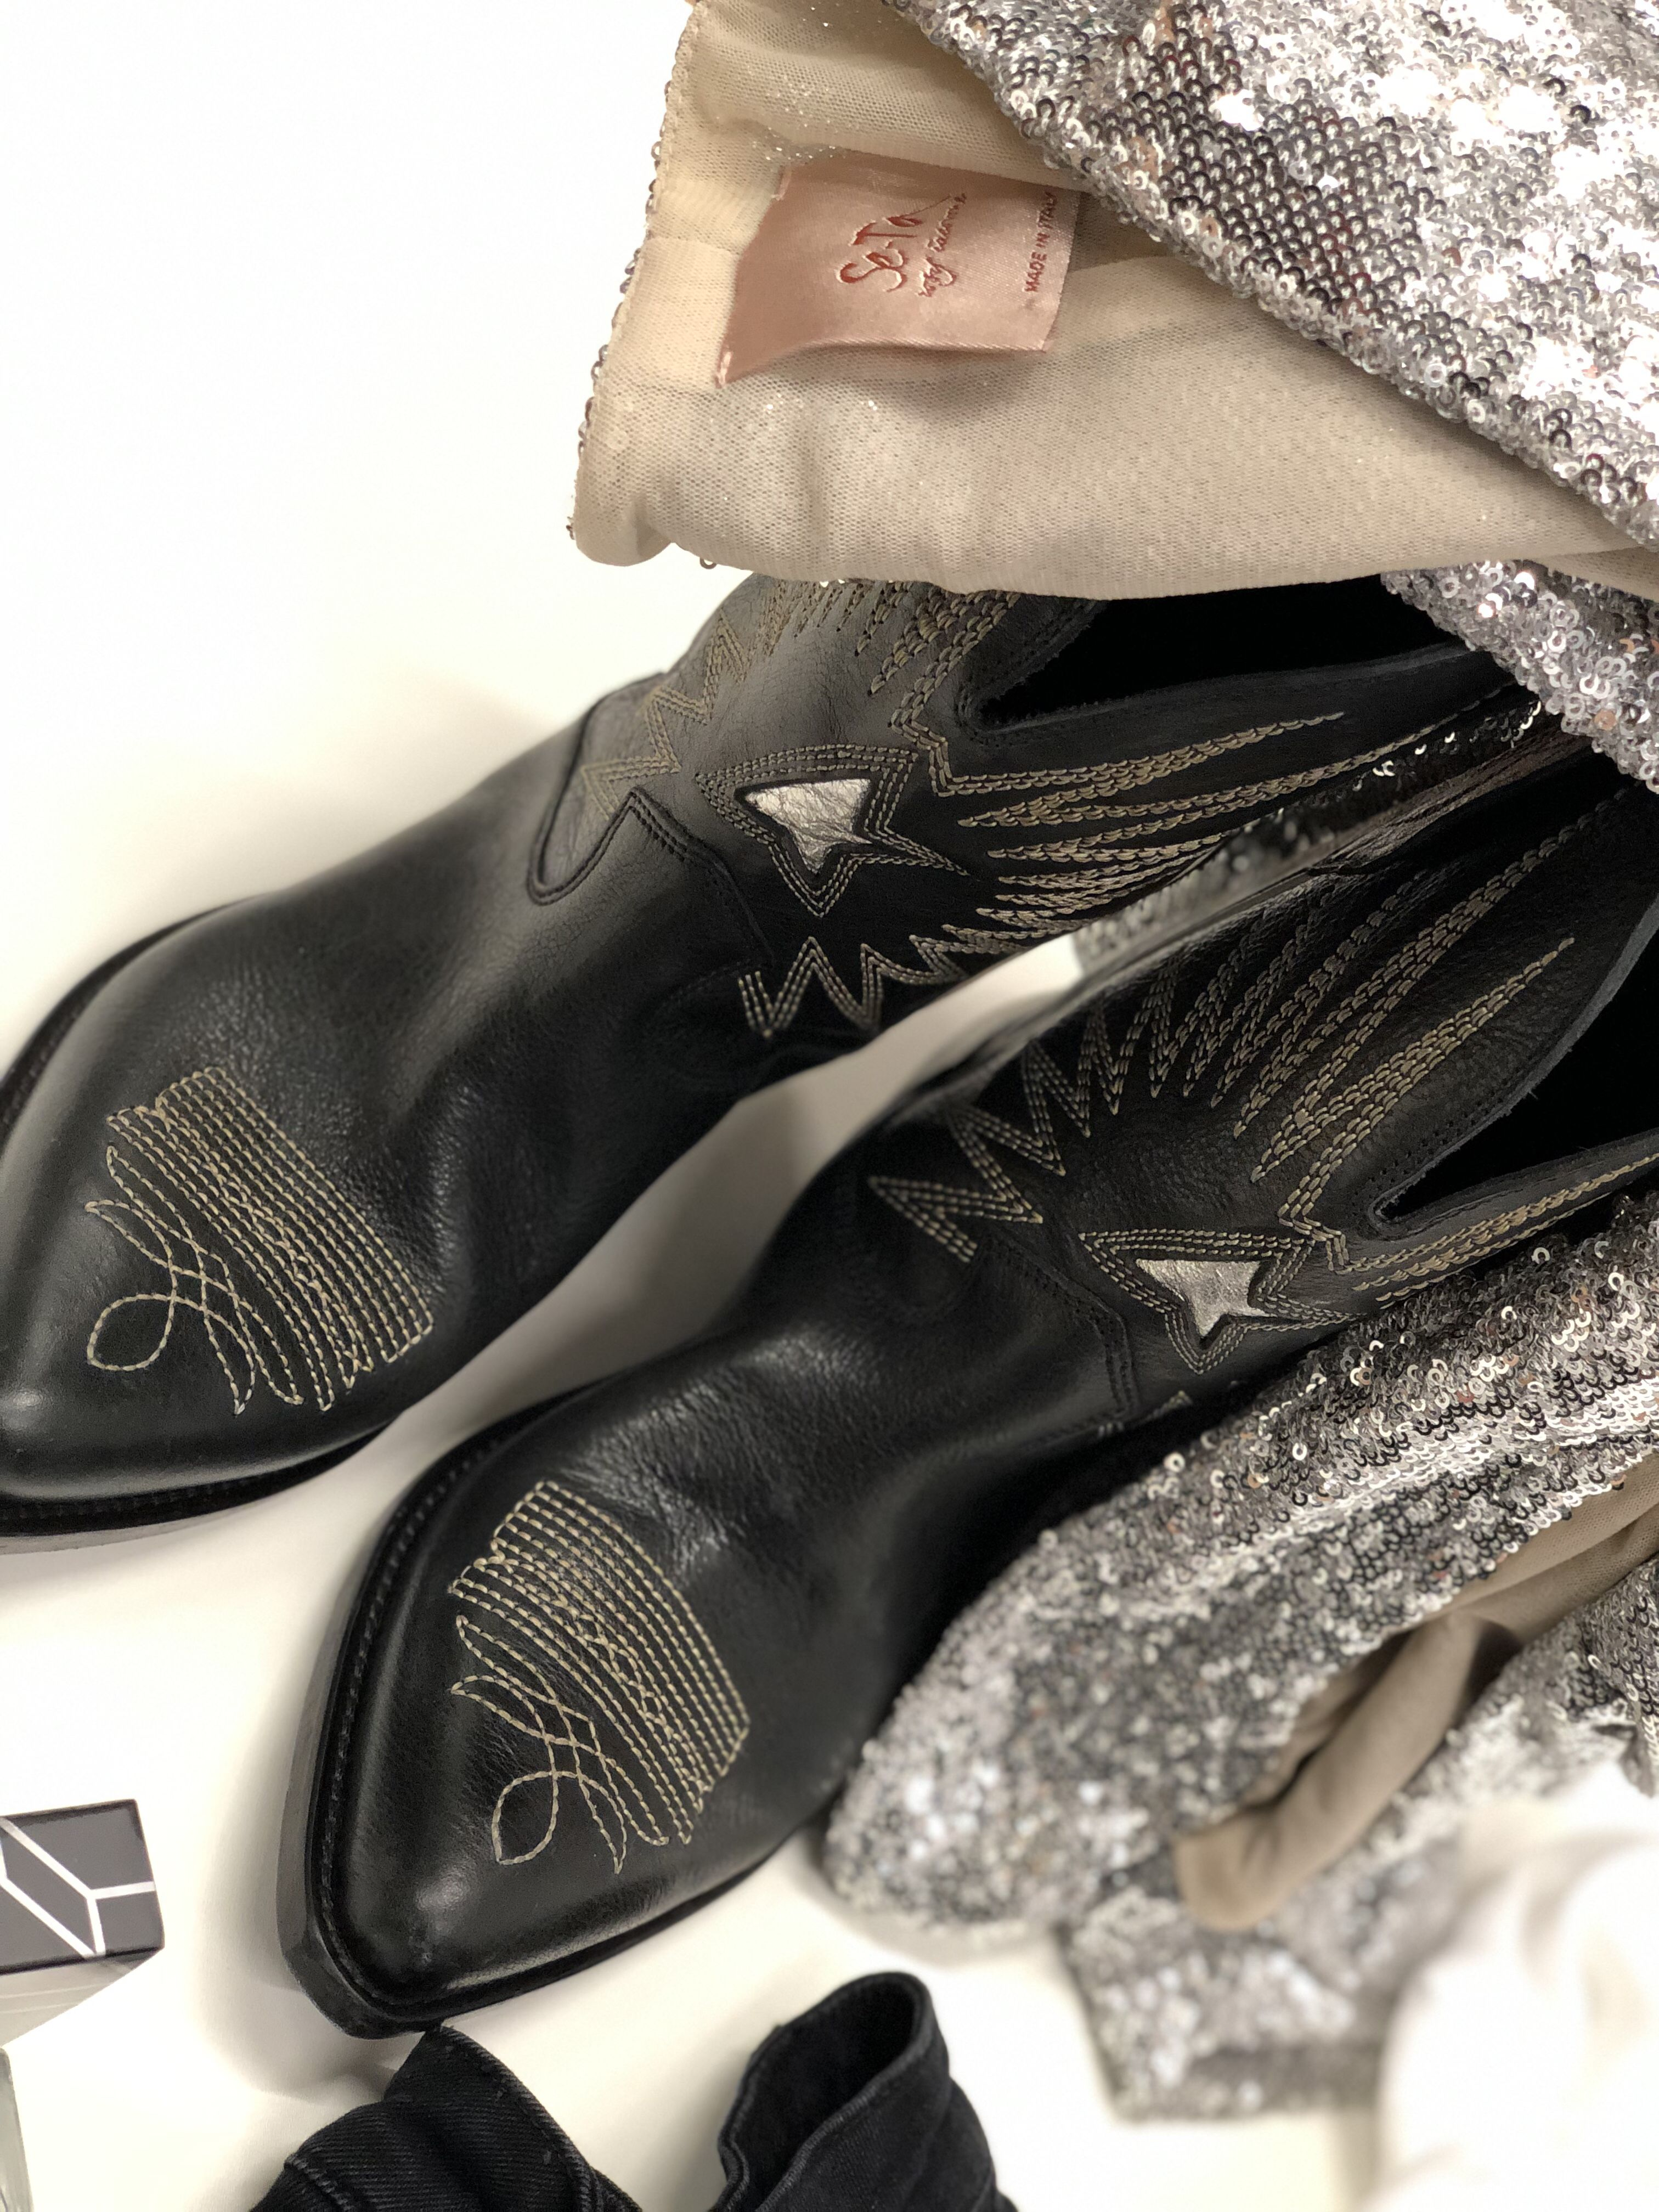 4c8ee5c57fa Black Wish Star cowboy boots from Golden Goose Deluxe Brand ...